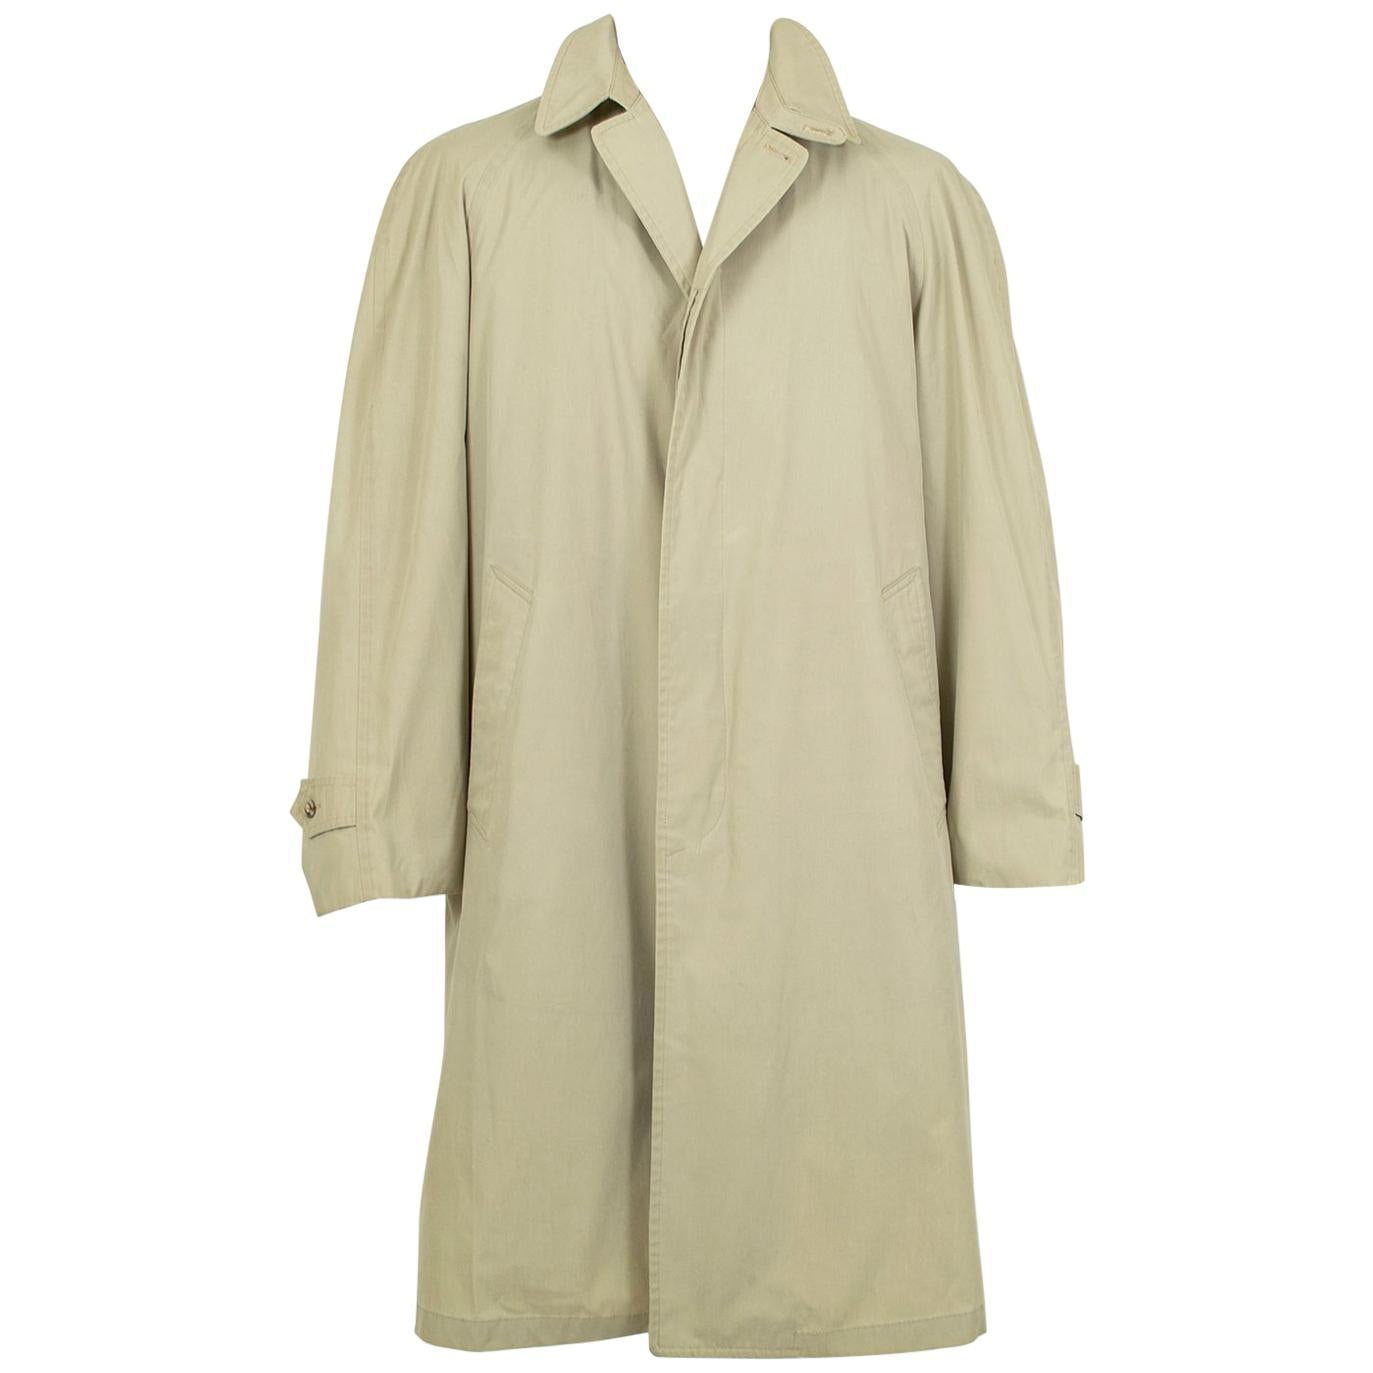 Men's London Fog Trench Raincoat with Removable Alpaca Lining – sz 40/42, 1950s